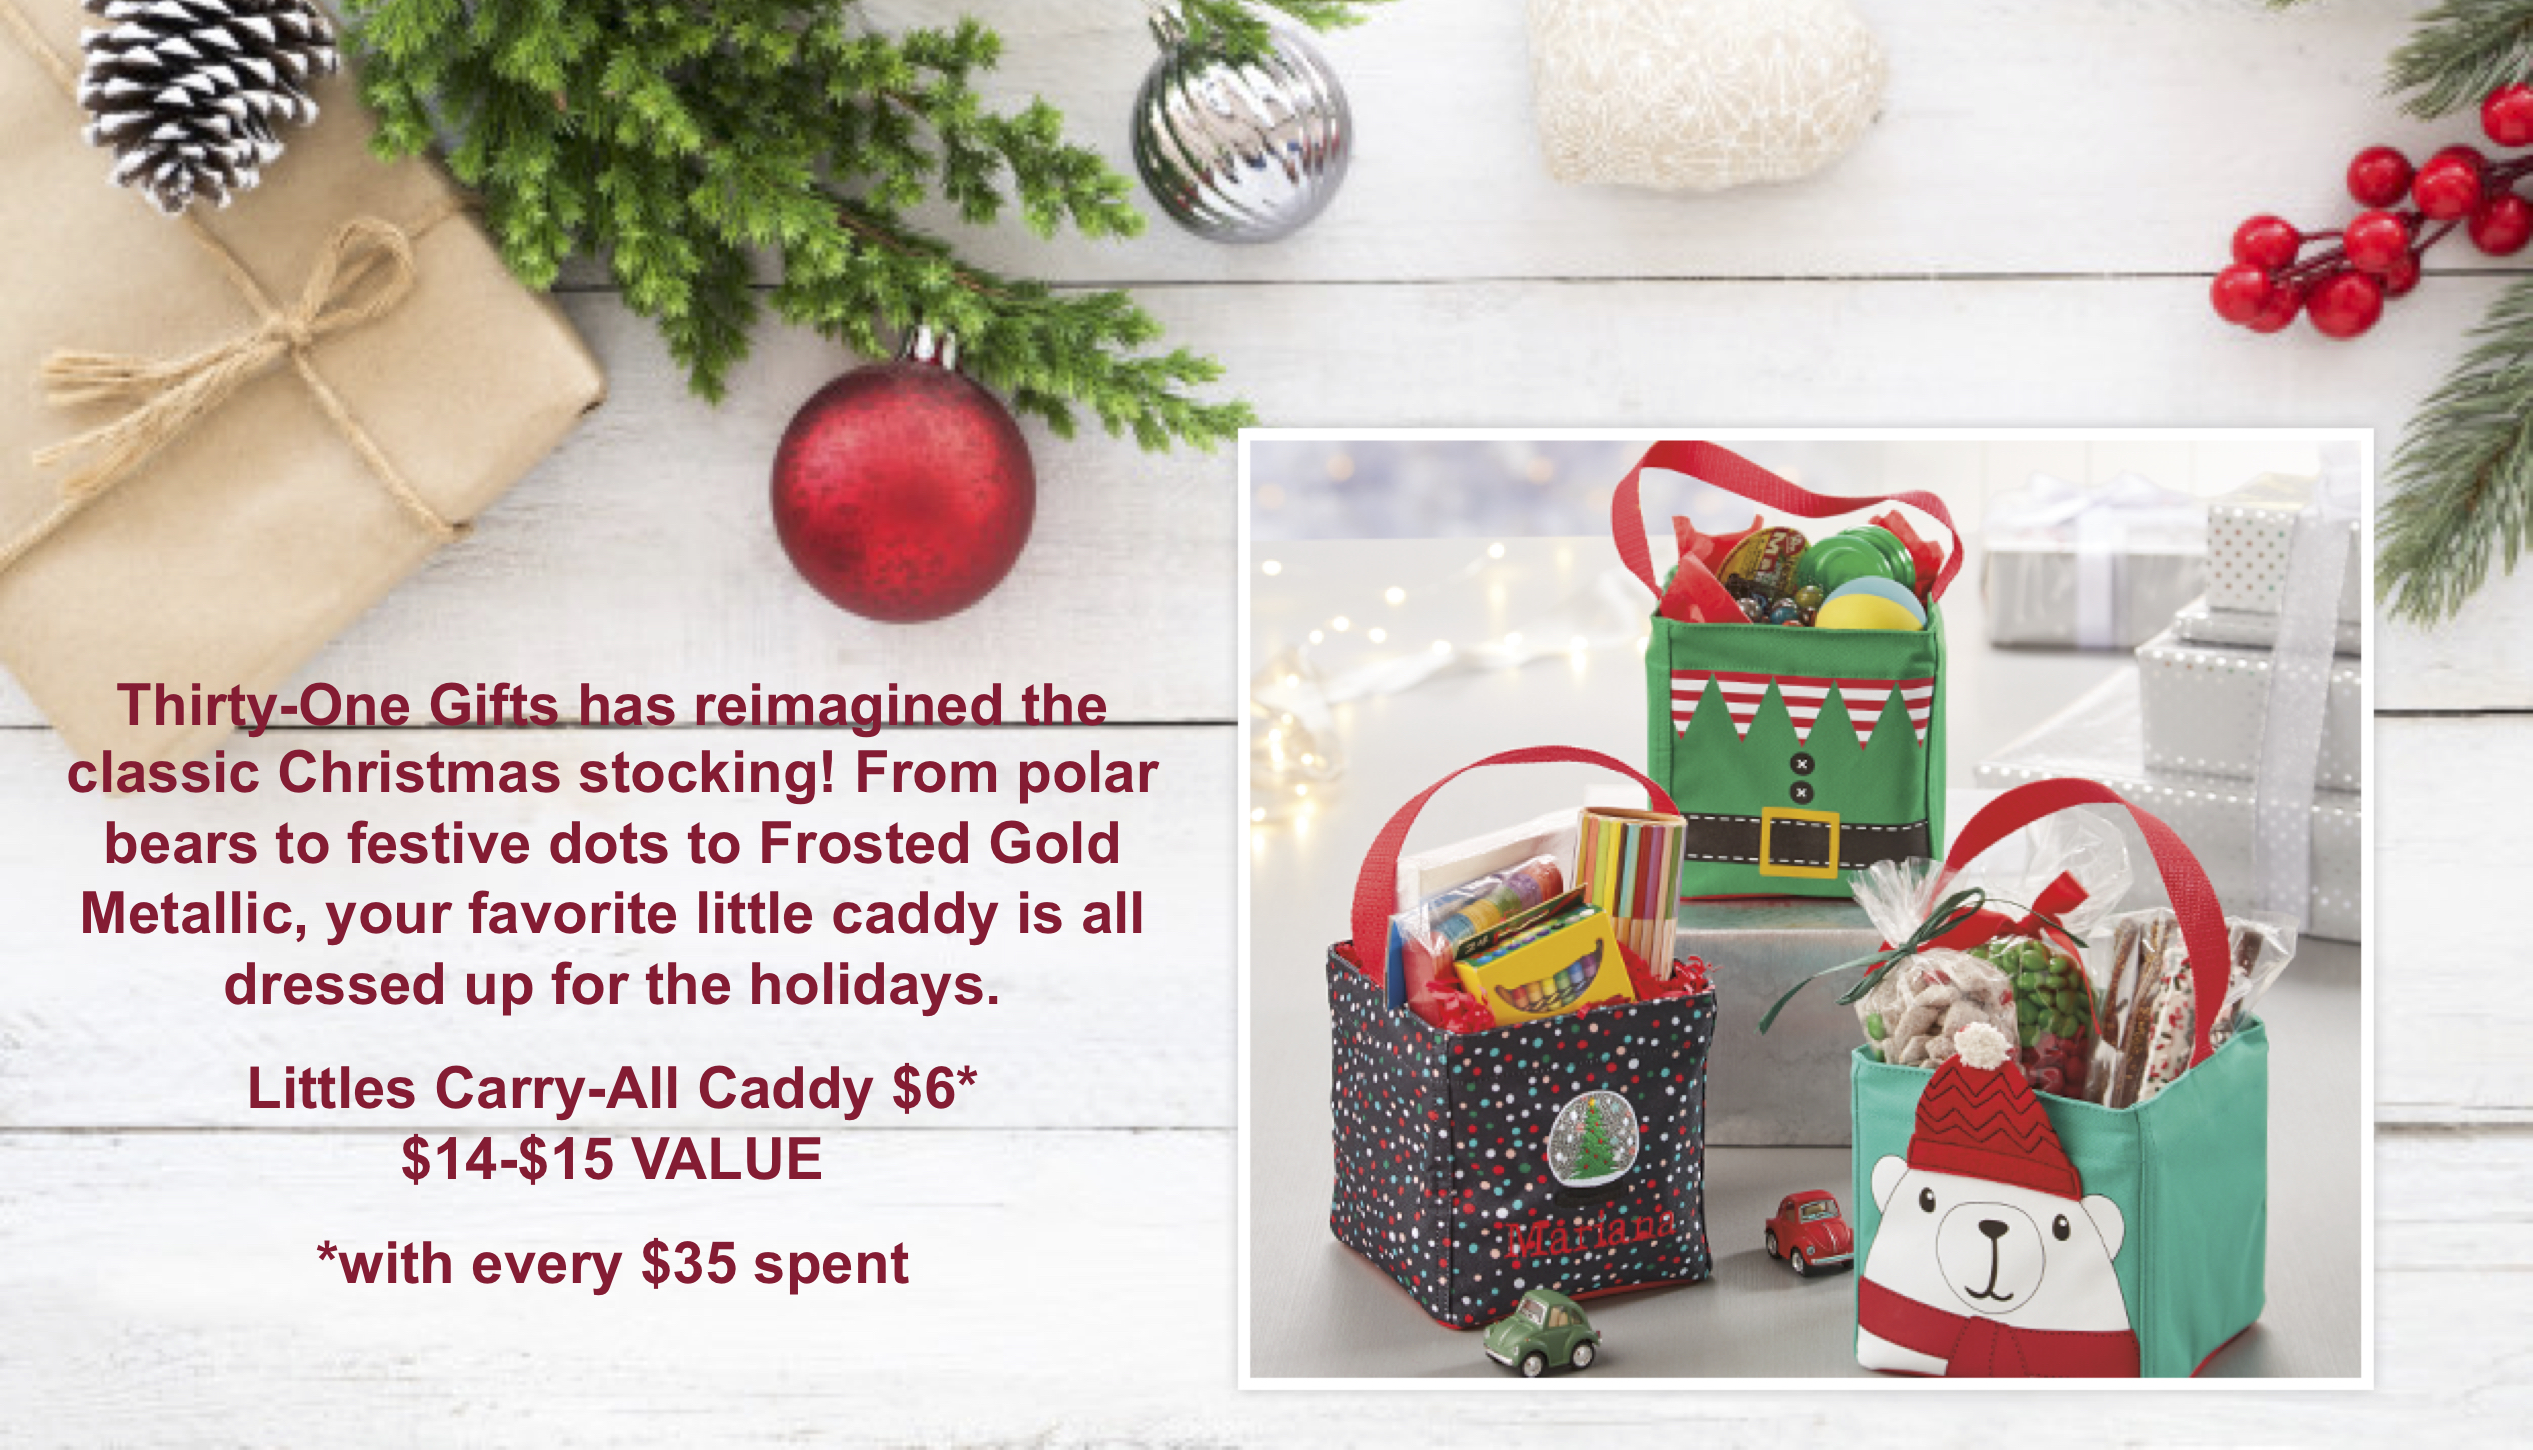 Thirty-One Gifts Littles Carry-All Caddy